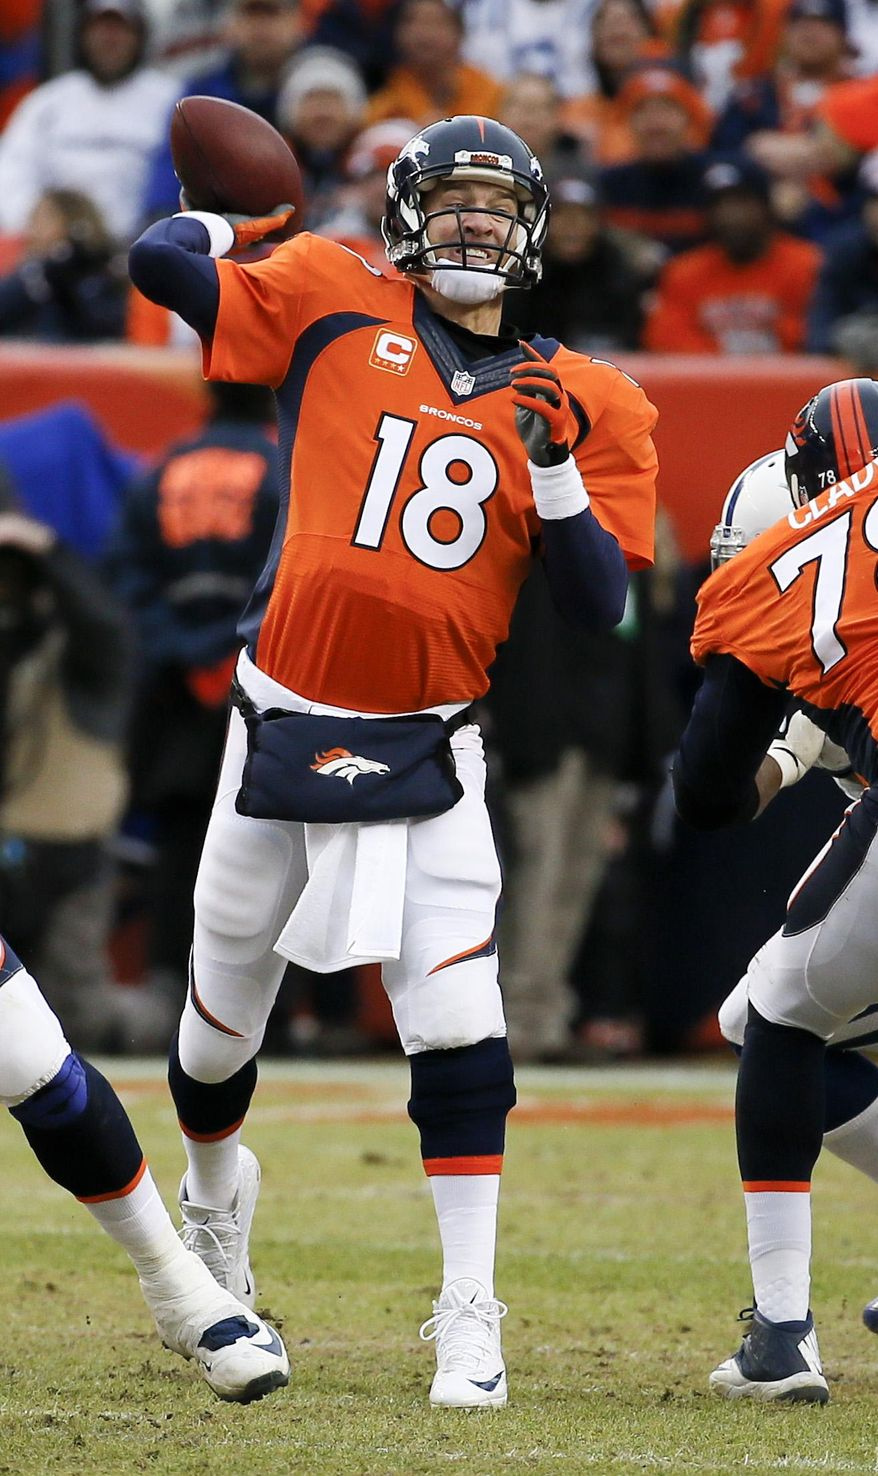 Denver Broncos quarterback Peyton Manning throws against the Indianapolis Colts during the first half of an NFL divisional playoff football game, Sunday, Jan. 11, 2015, in Denver. (AP Photo/Jack Dempsey)